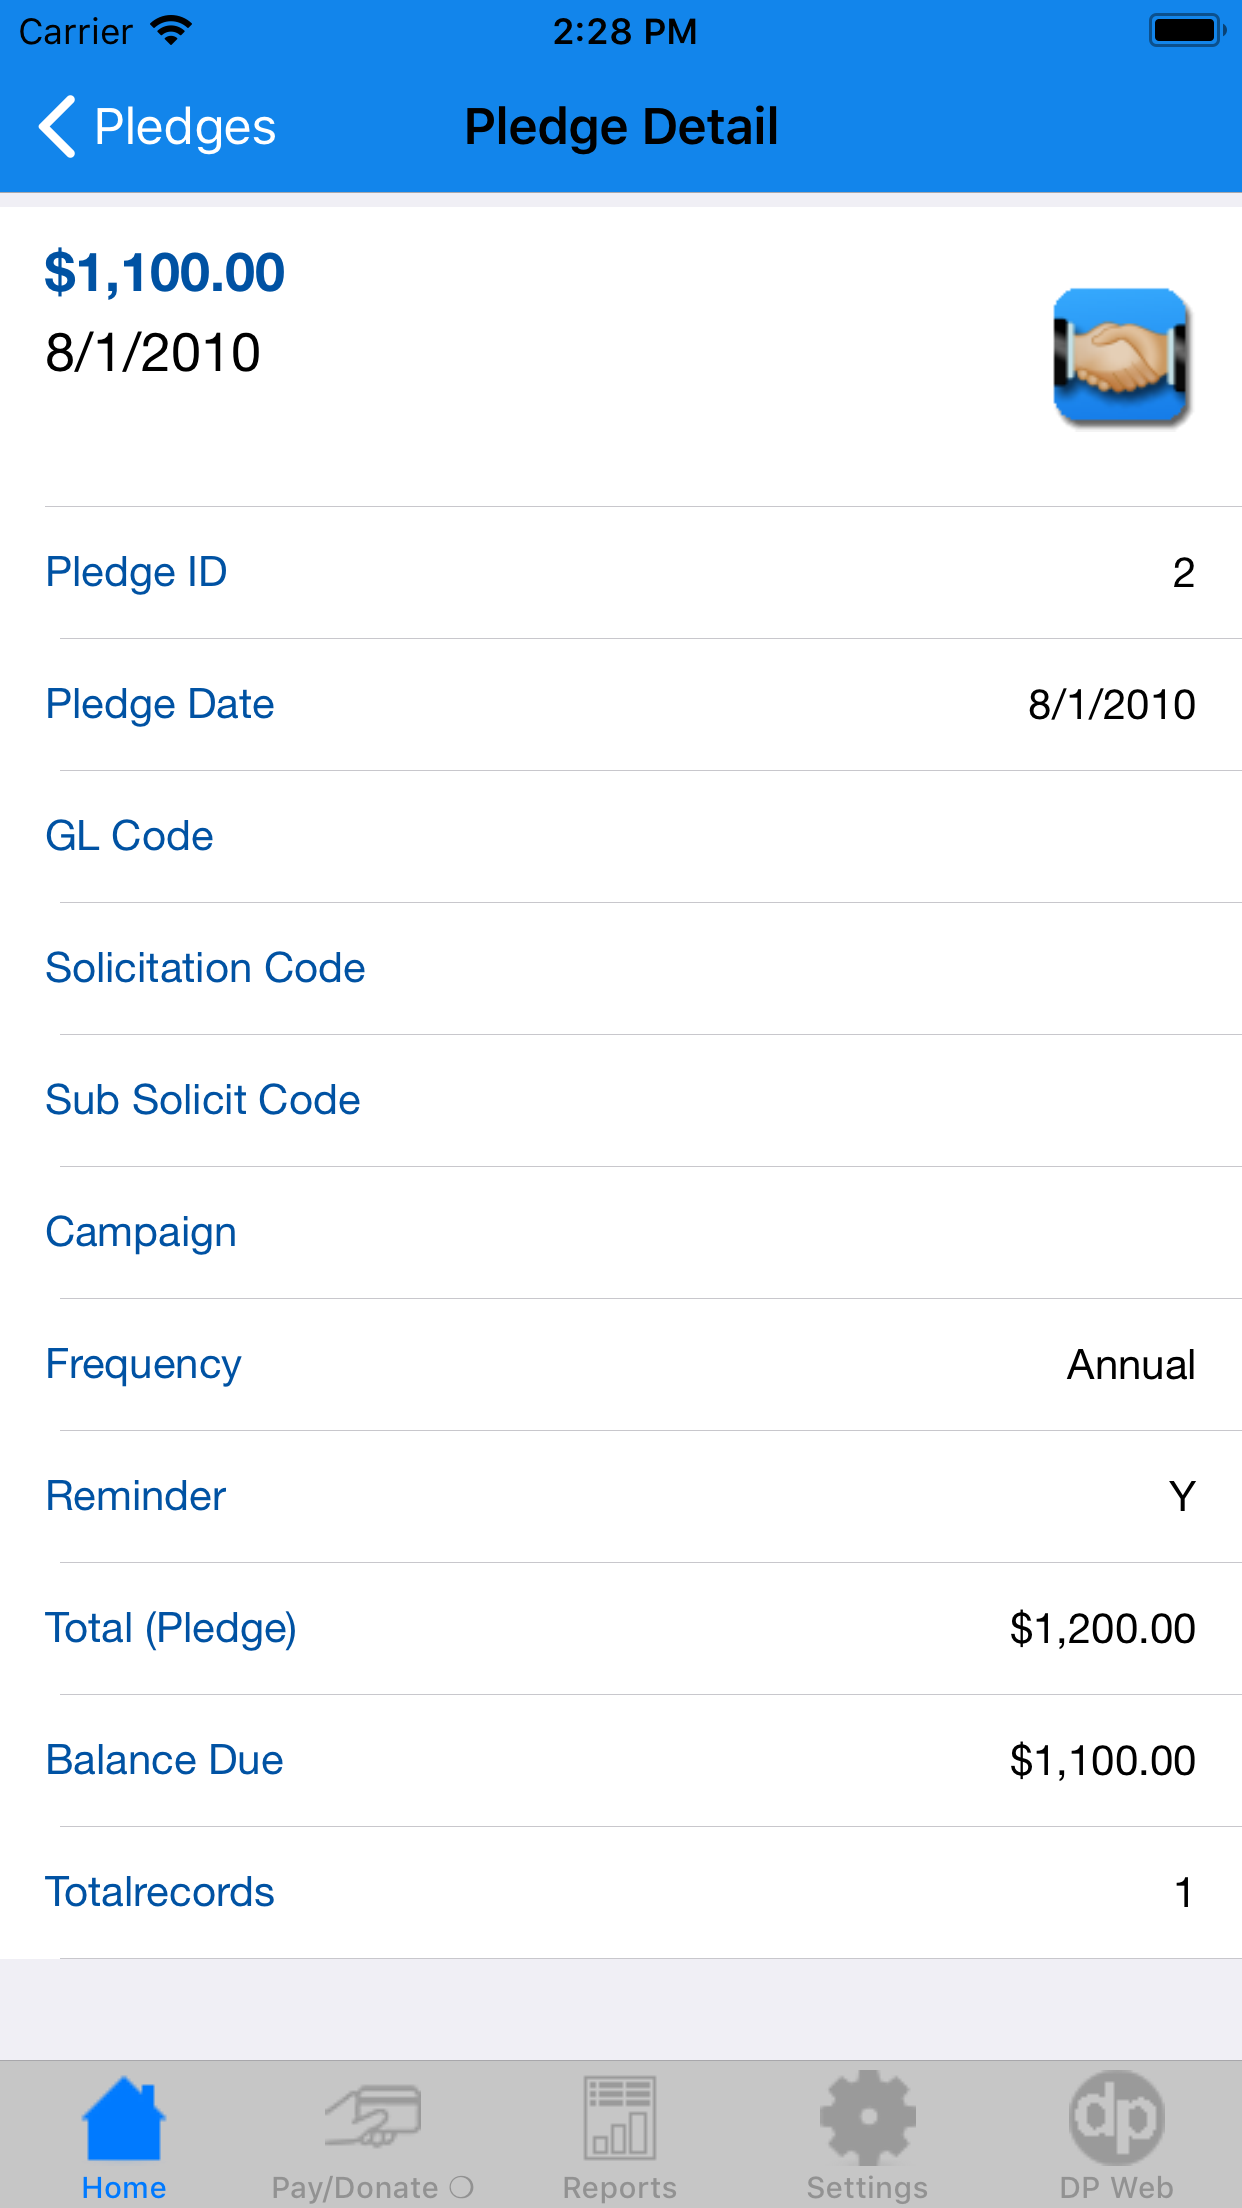 DP Mobile Fundraising App Pledge History Details Screenshot